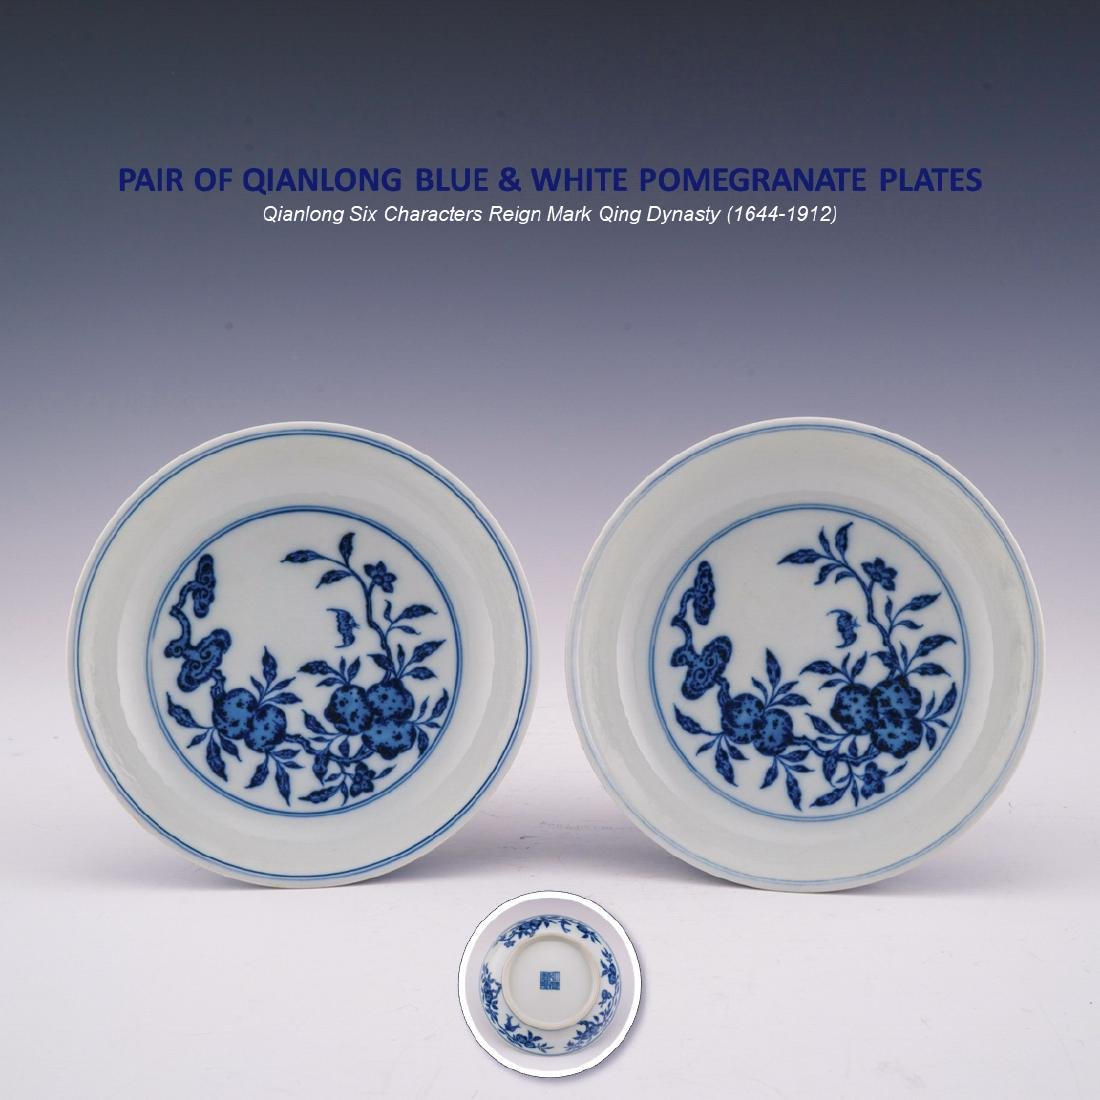 PAIR OF QIANLONG BLUE & WHITE POMEGRANATE PLATES